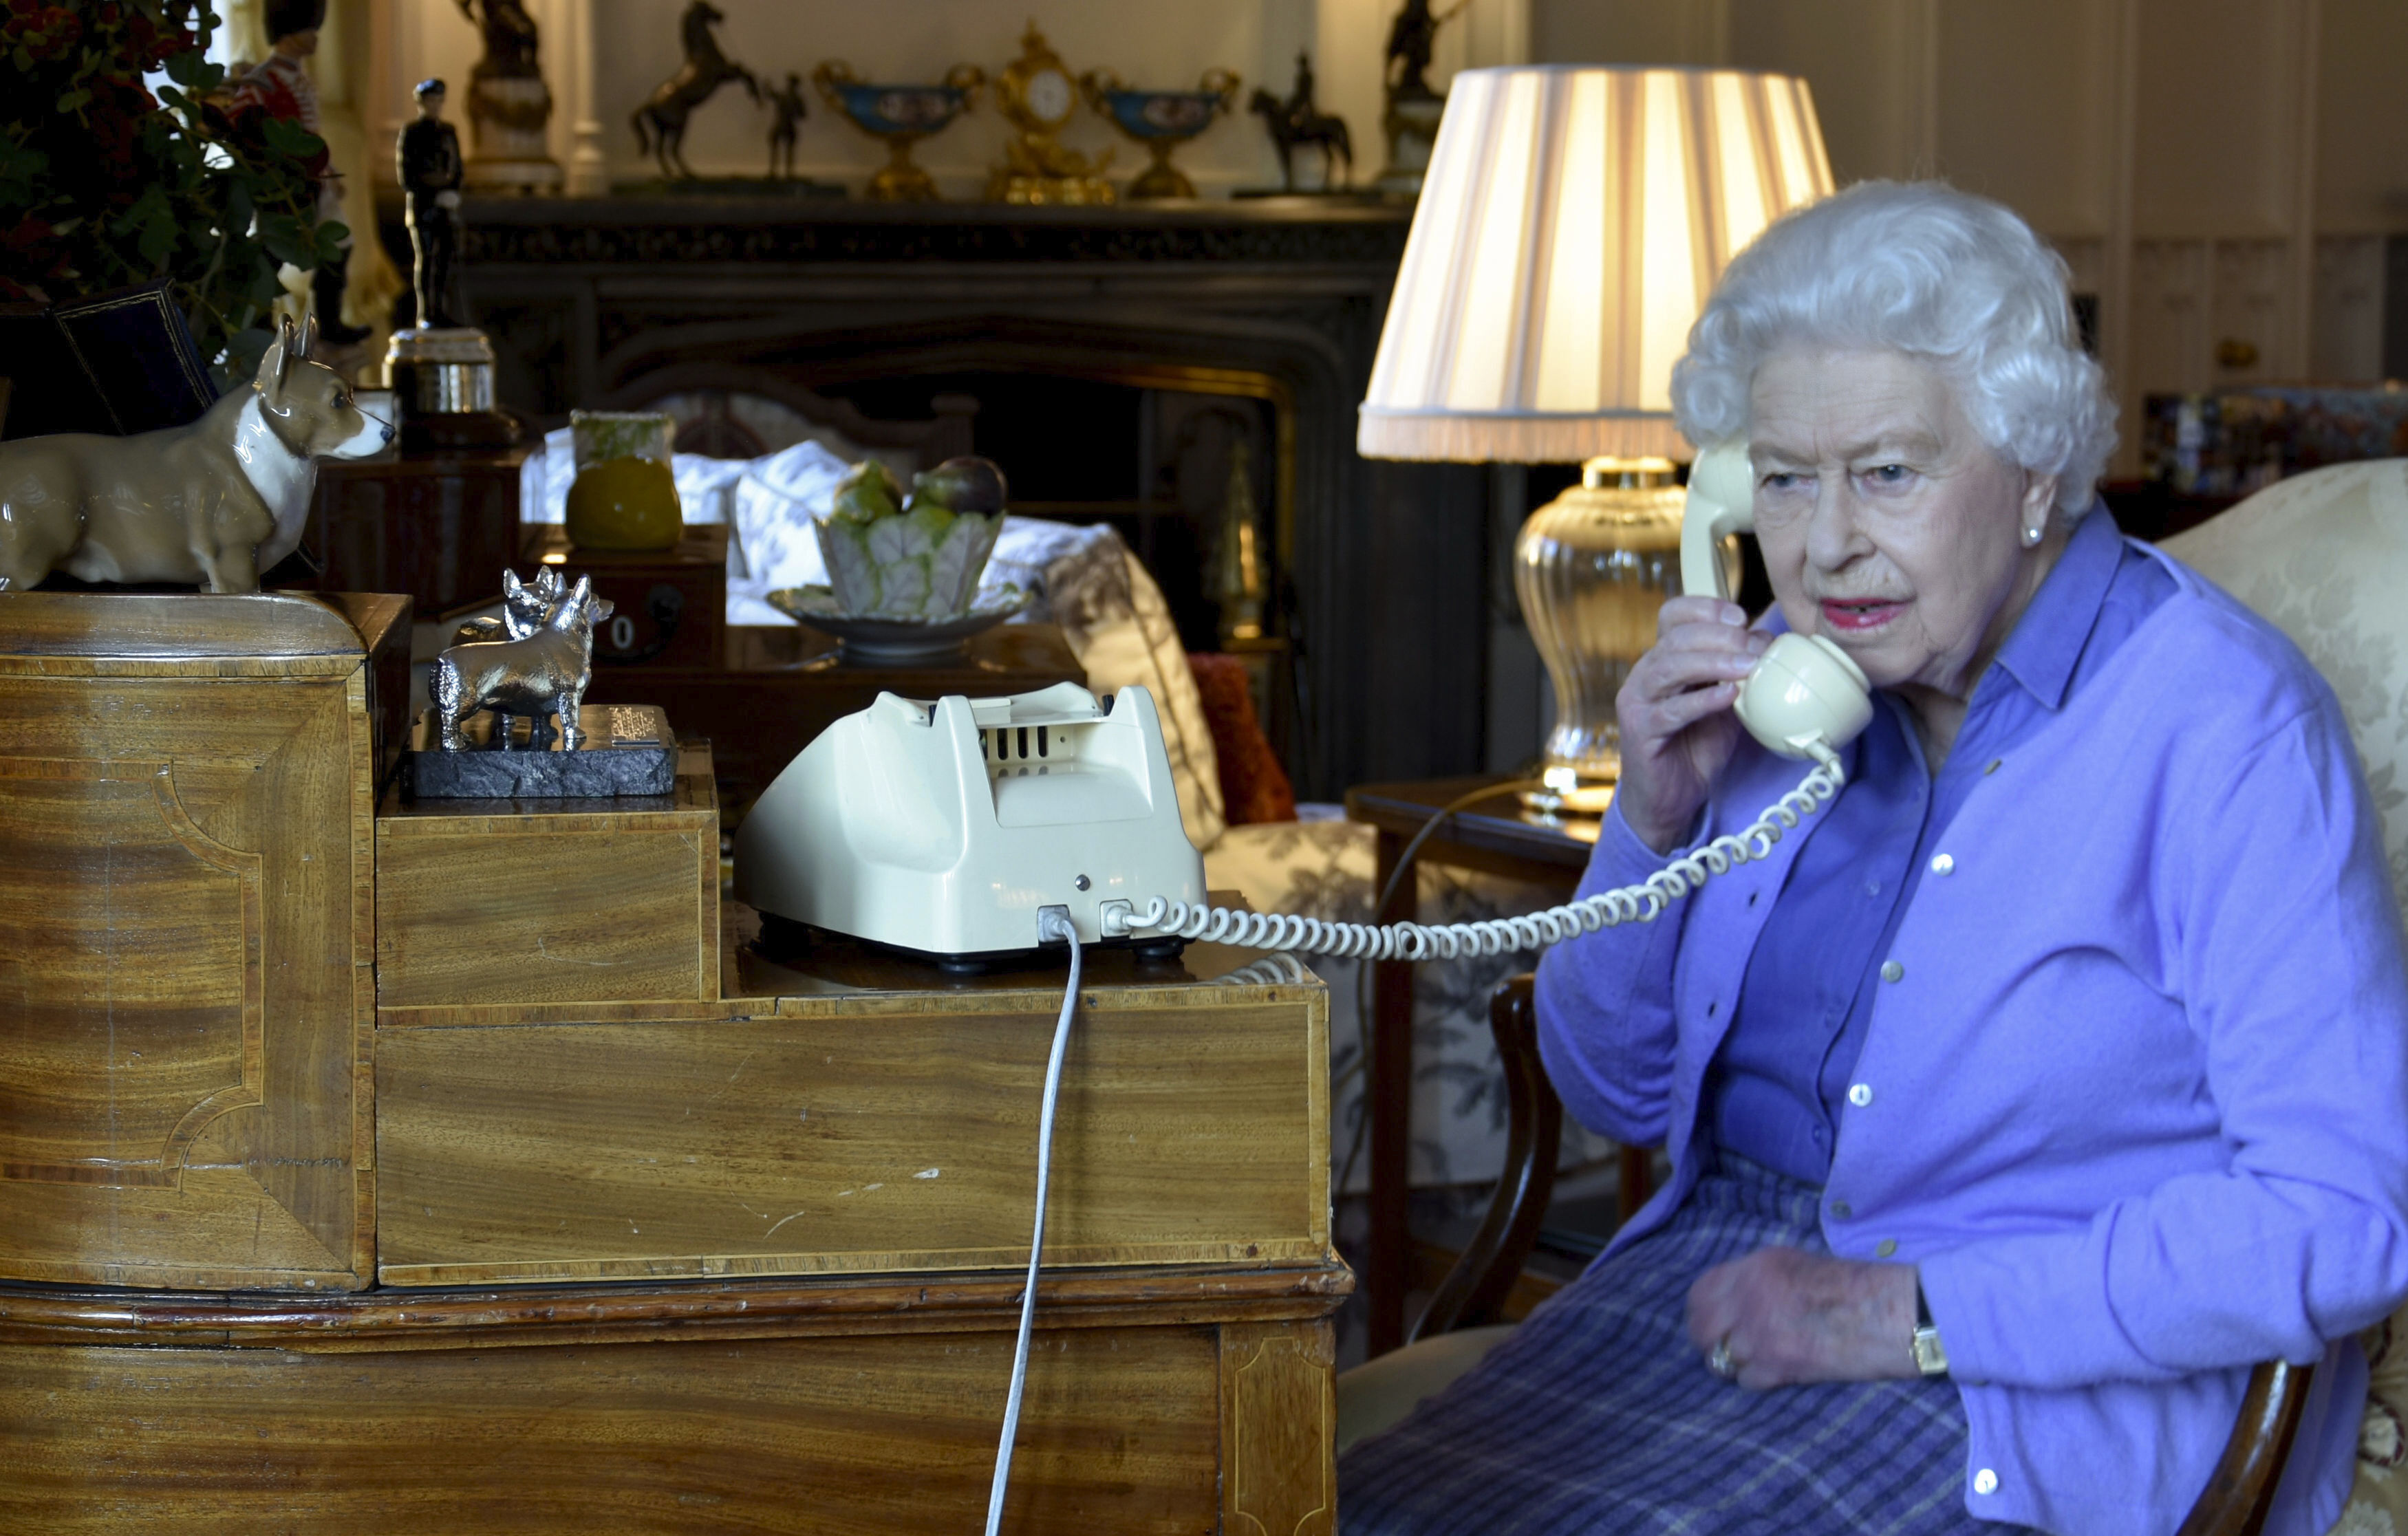 In this photo made available by Buckingham Palace, Britain's Queen Elizabeth II speaks to Prime Minister Boris Johnson from Windsor Castle, Windsor, England, Wednesday March 25, 2020, for her weekly audience.